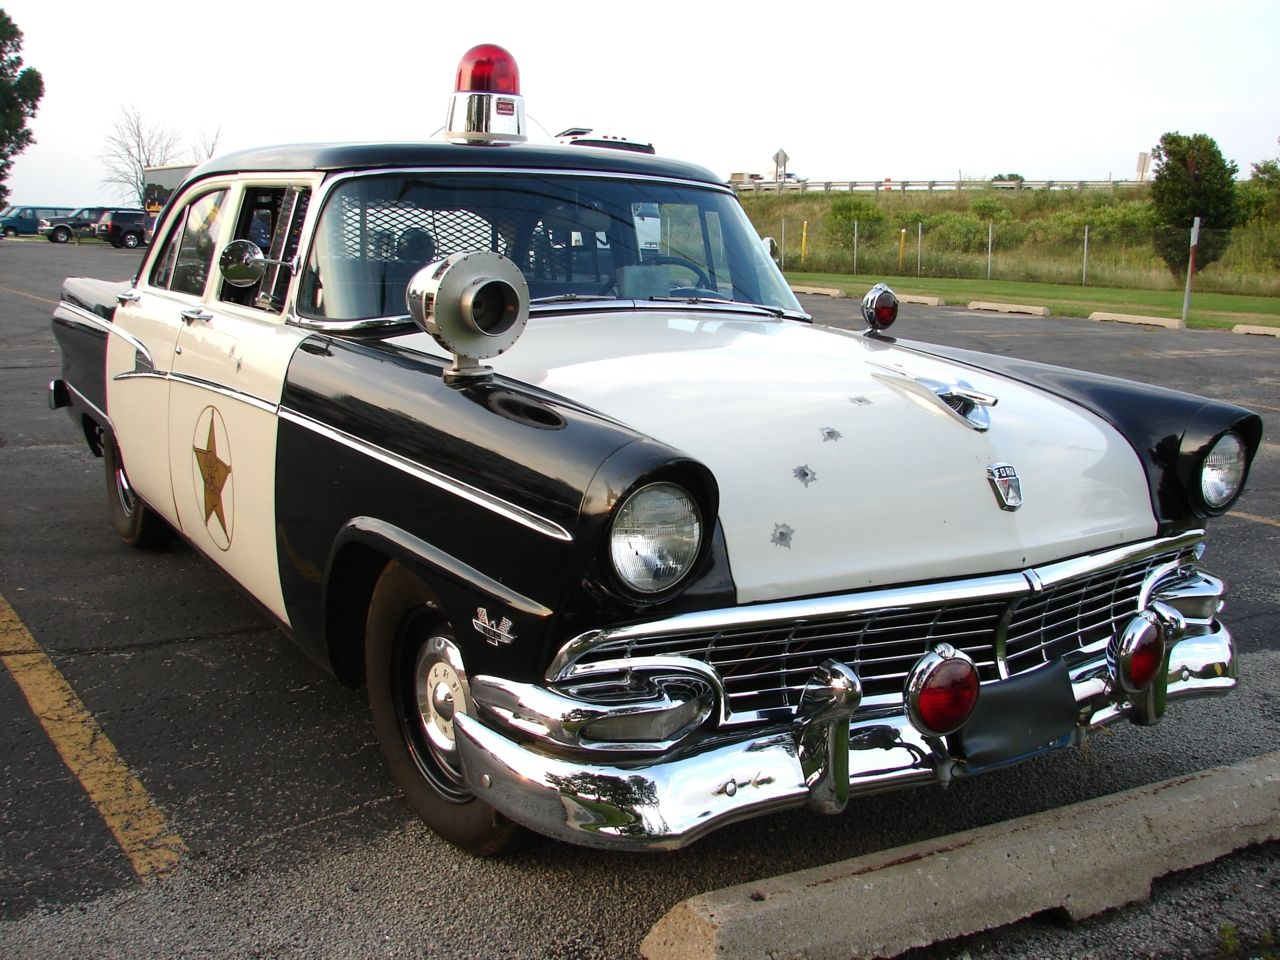 Old School Police Cars | Cars | Pinterest | Police cars, Cars and ...